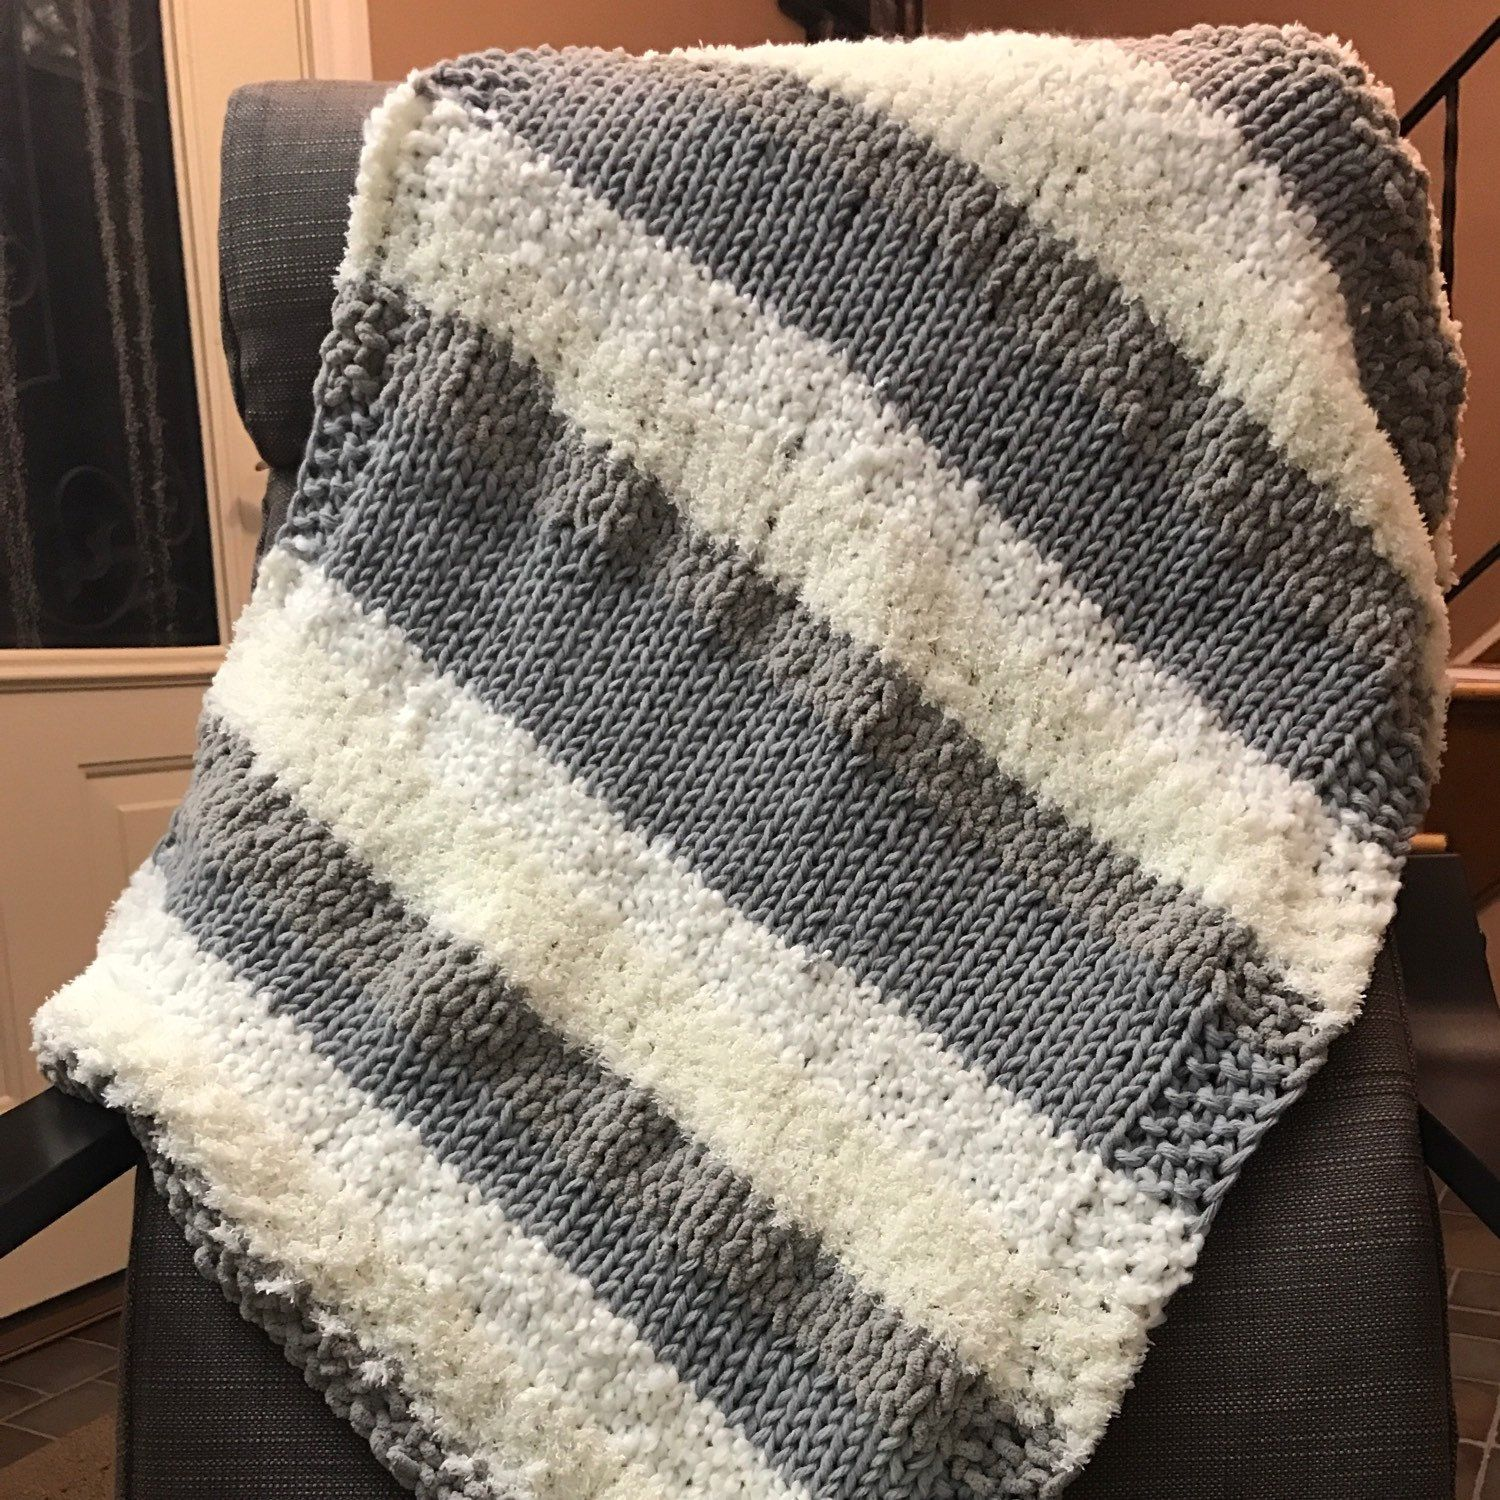 Cream and Gray Home Bundle baby blanket! | My knitting projects ...